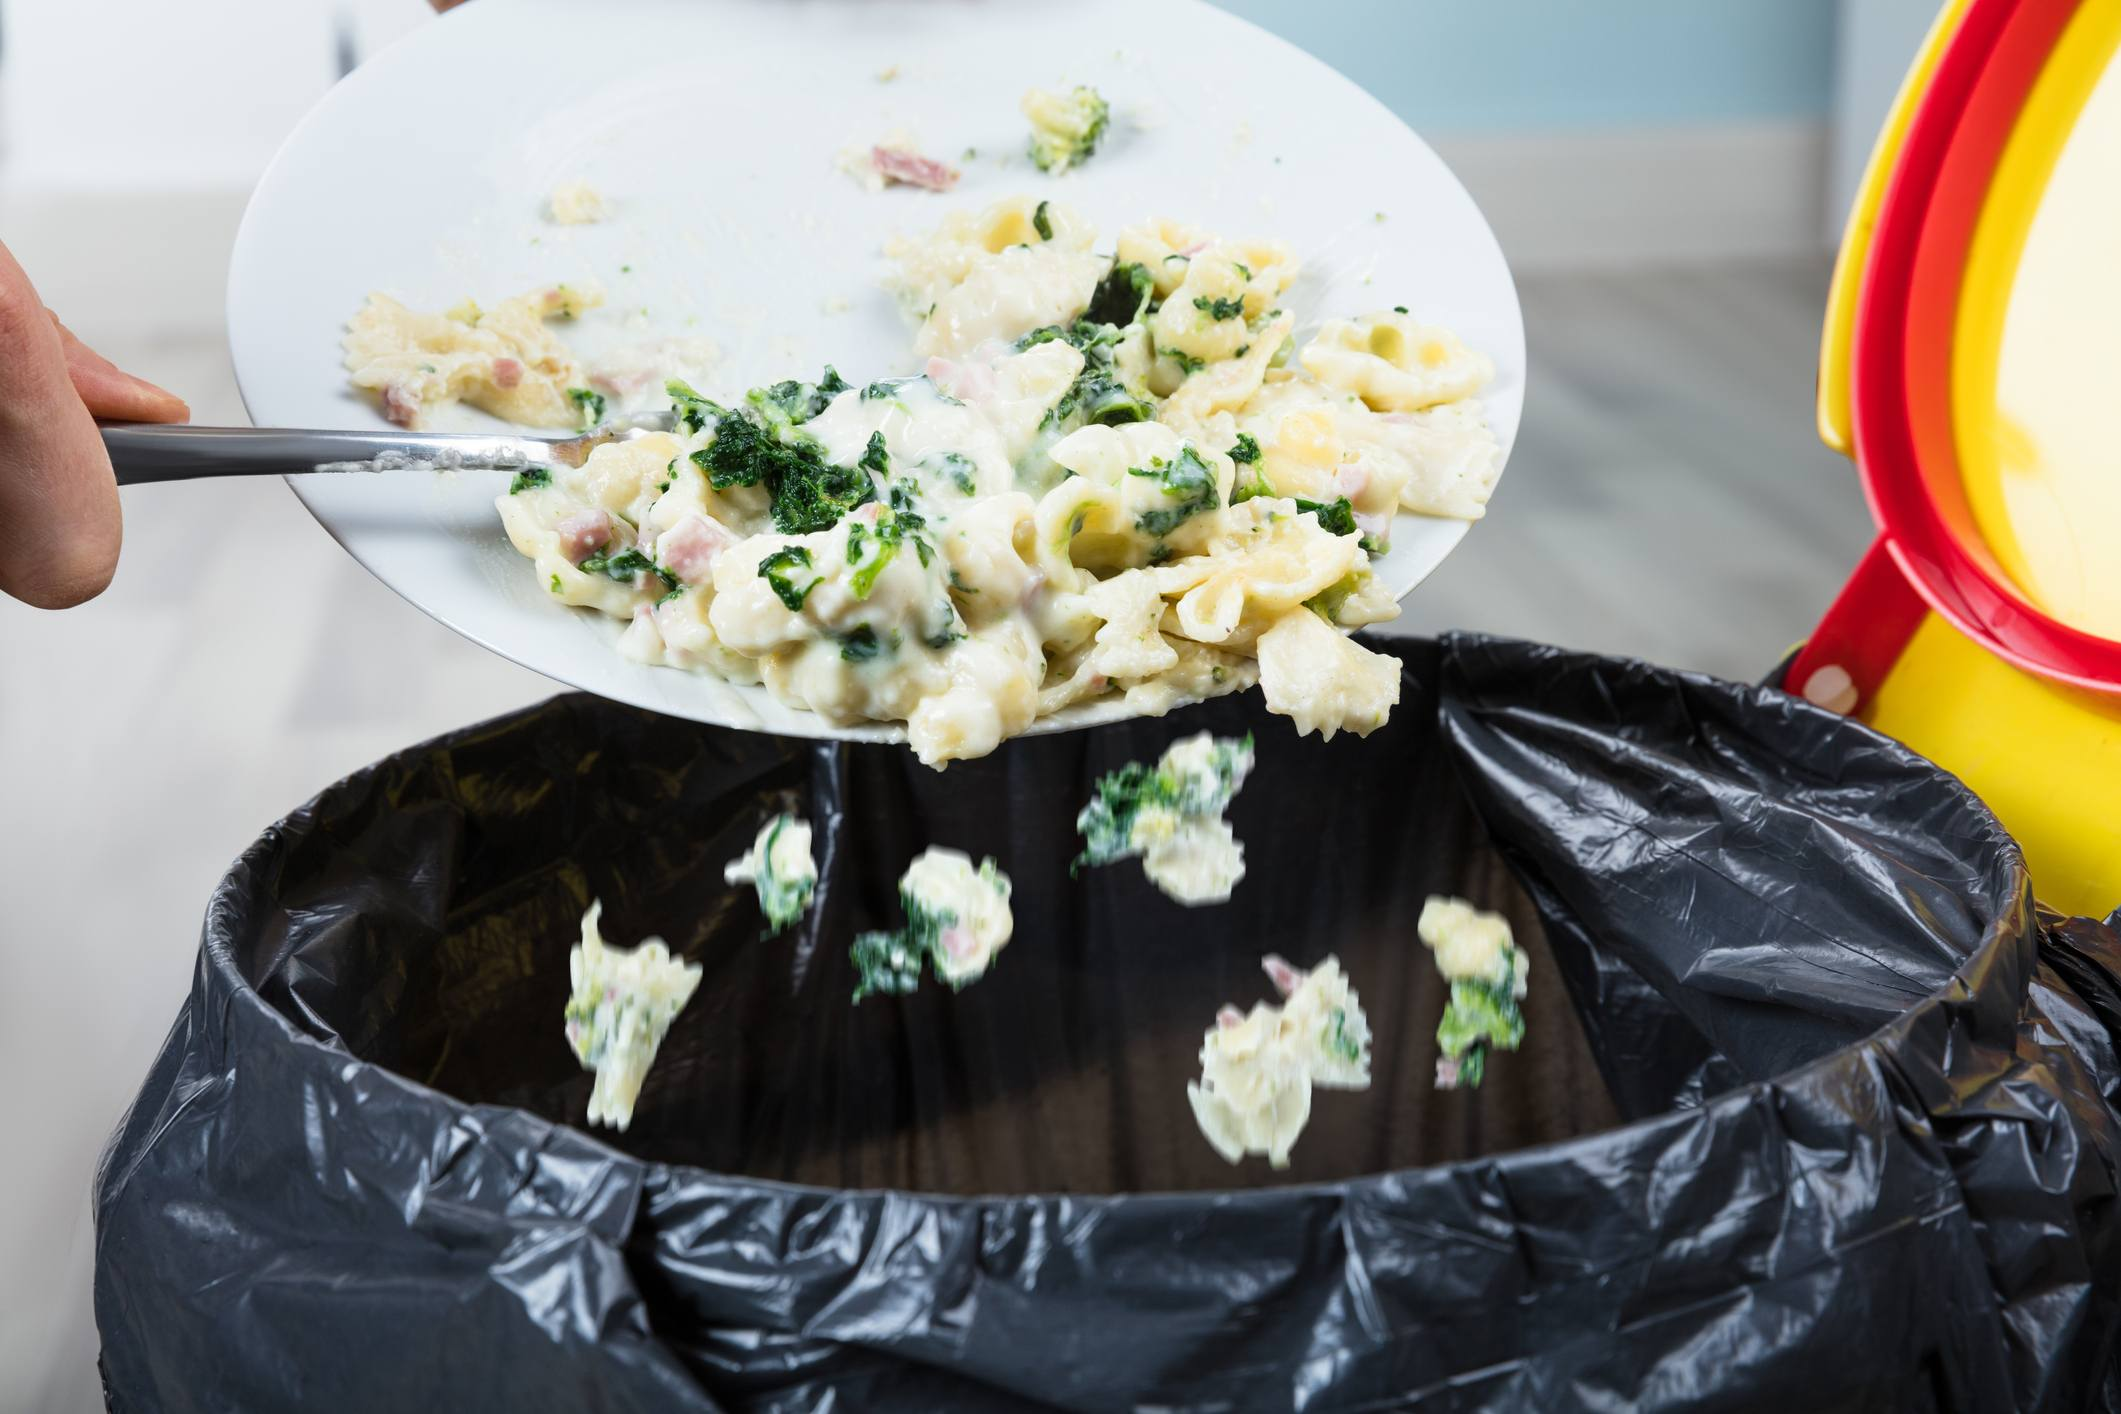 Person Throwing Cooked Pasta In Trash Bin